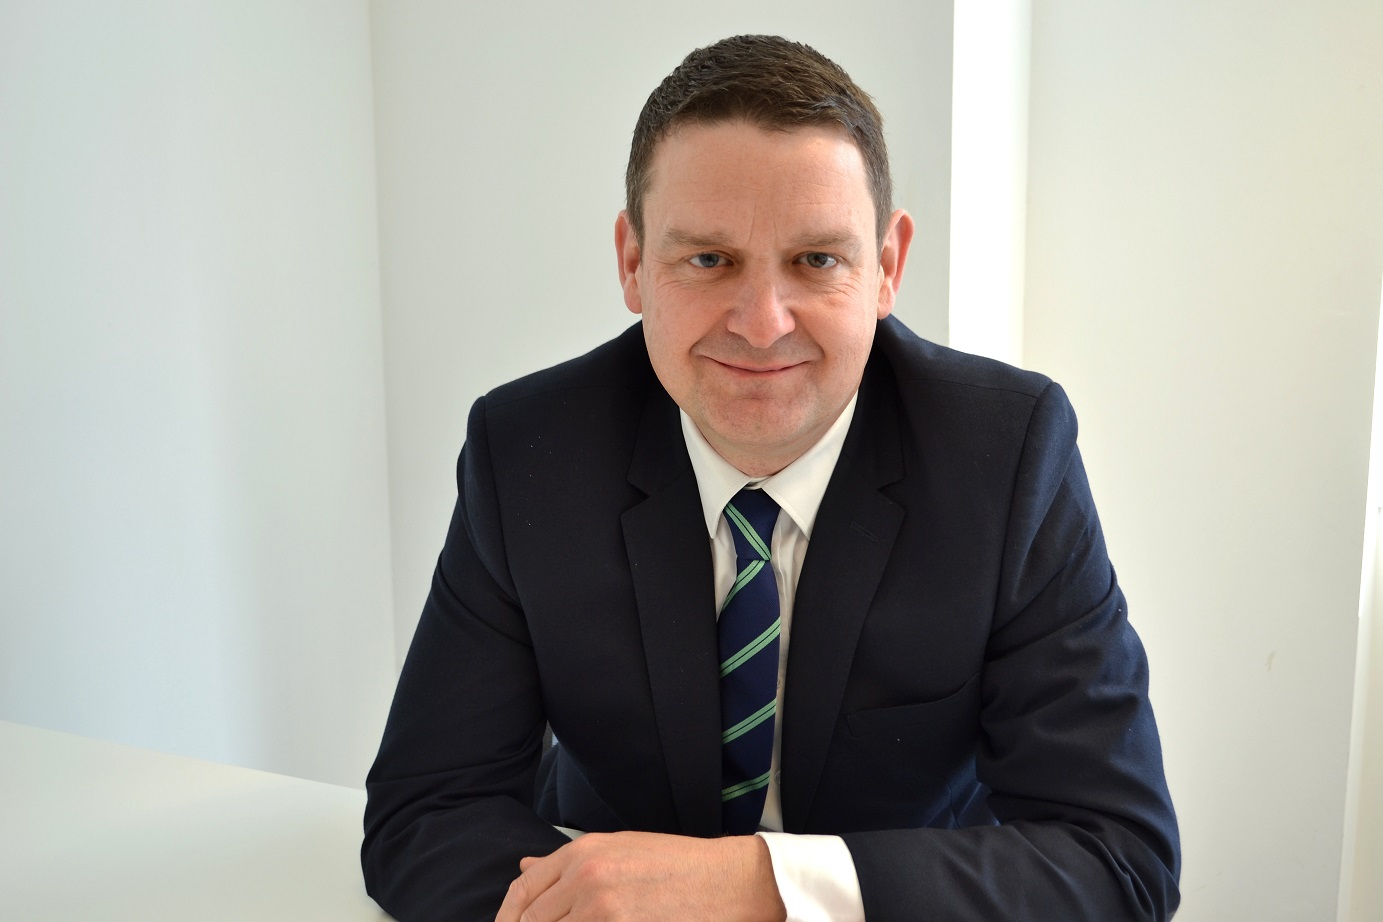 BE Offices today announces that industry veteran, Nick Gandy, director of business centres at BE Offices